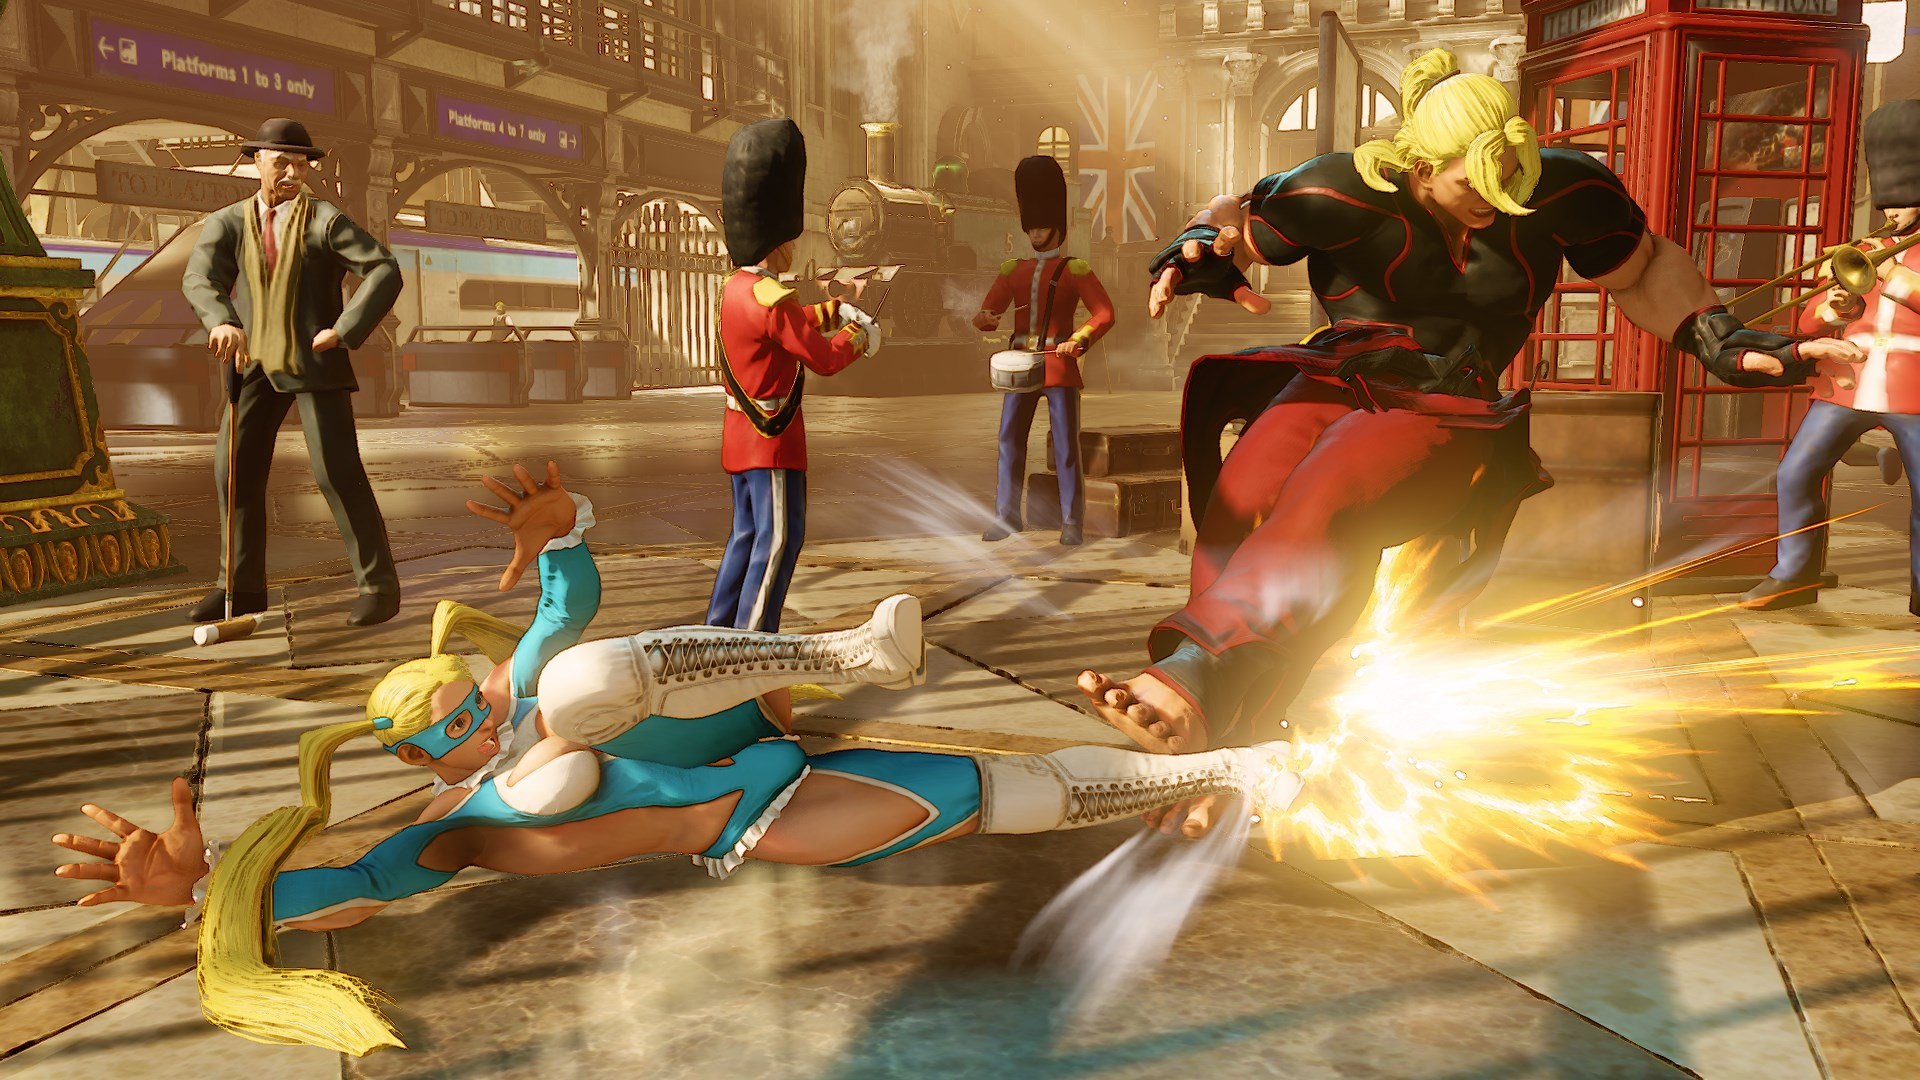 R  Mika Set to Show Off Her New Wrestling Moves in Street